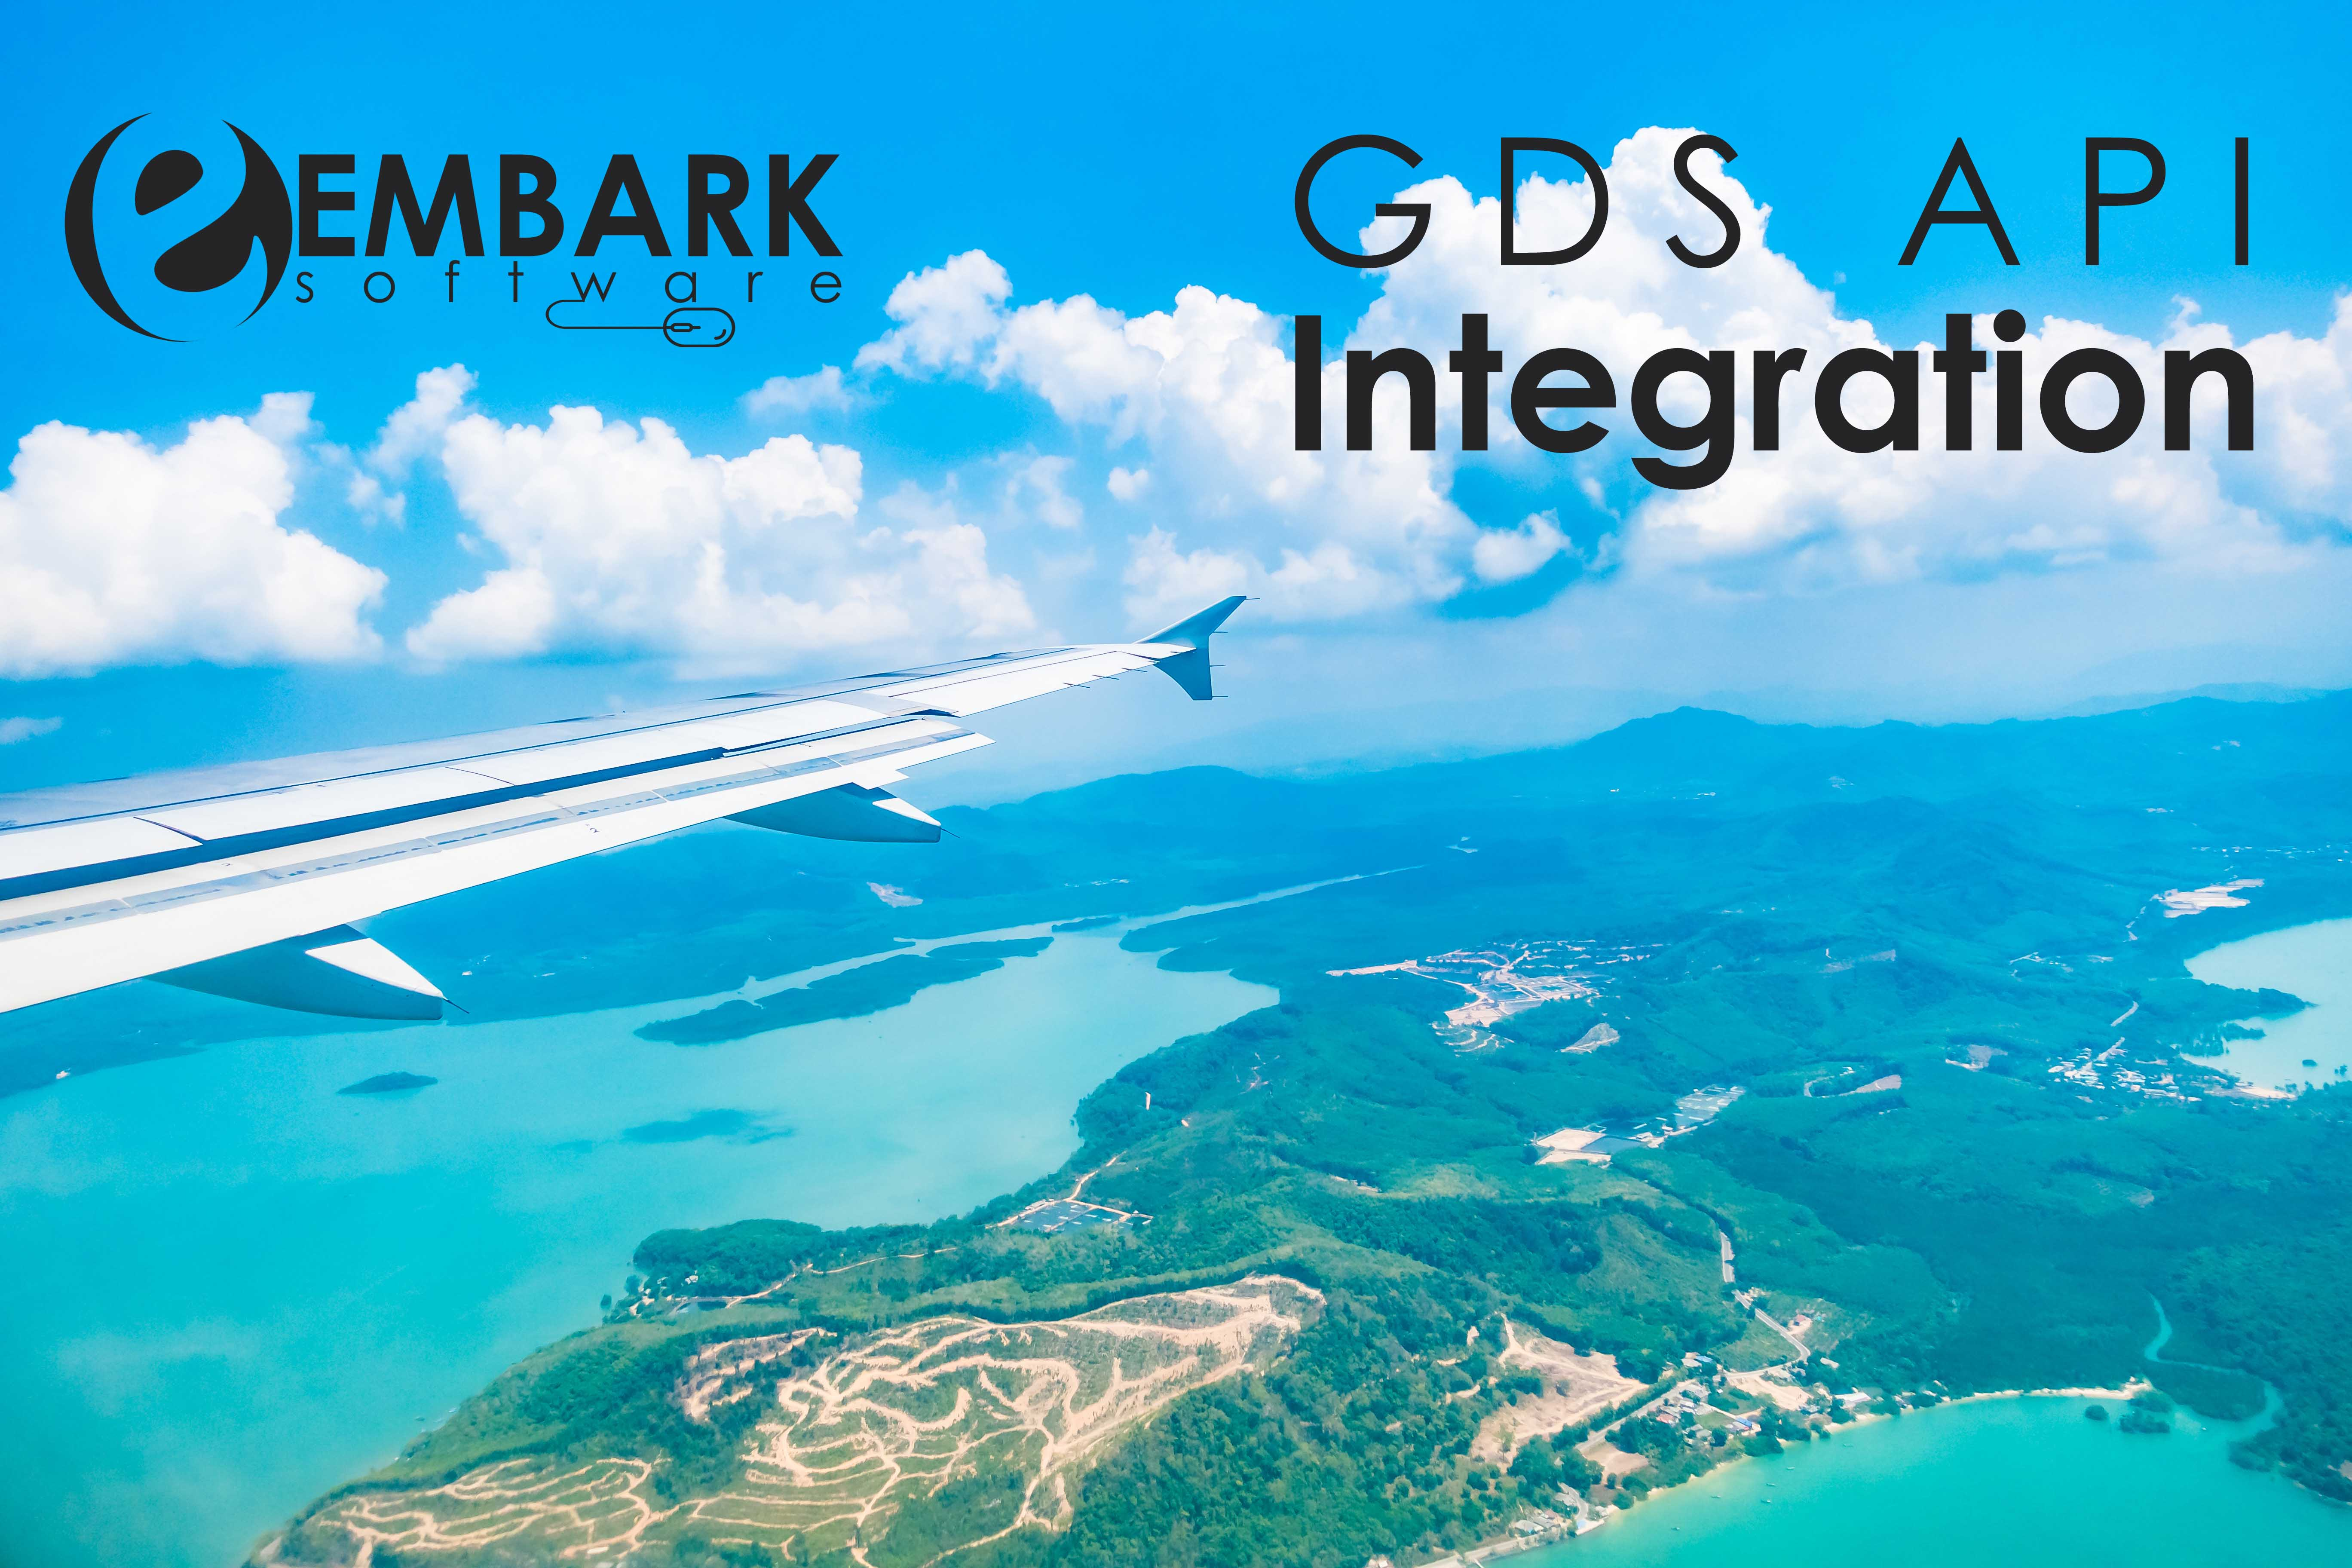 What Are the Key Features of The GDS API Integration?